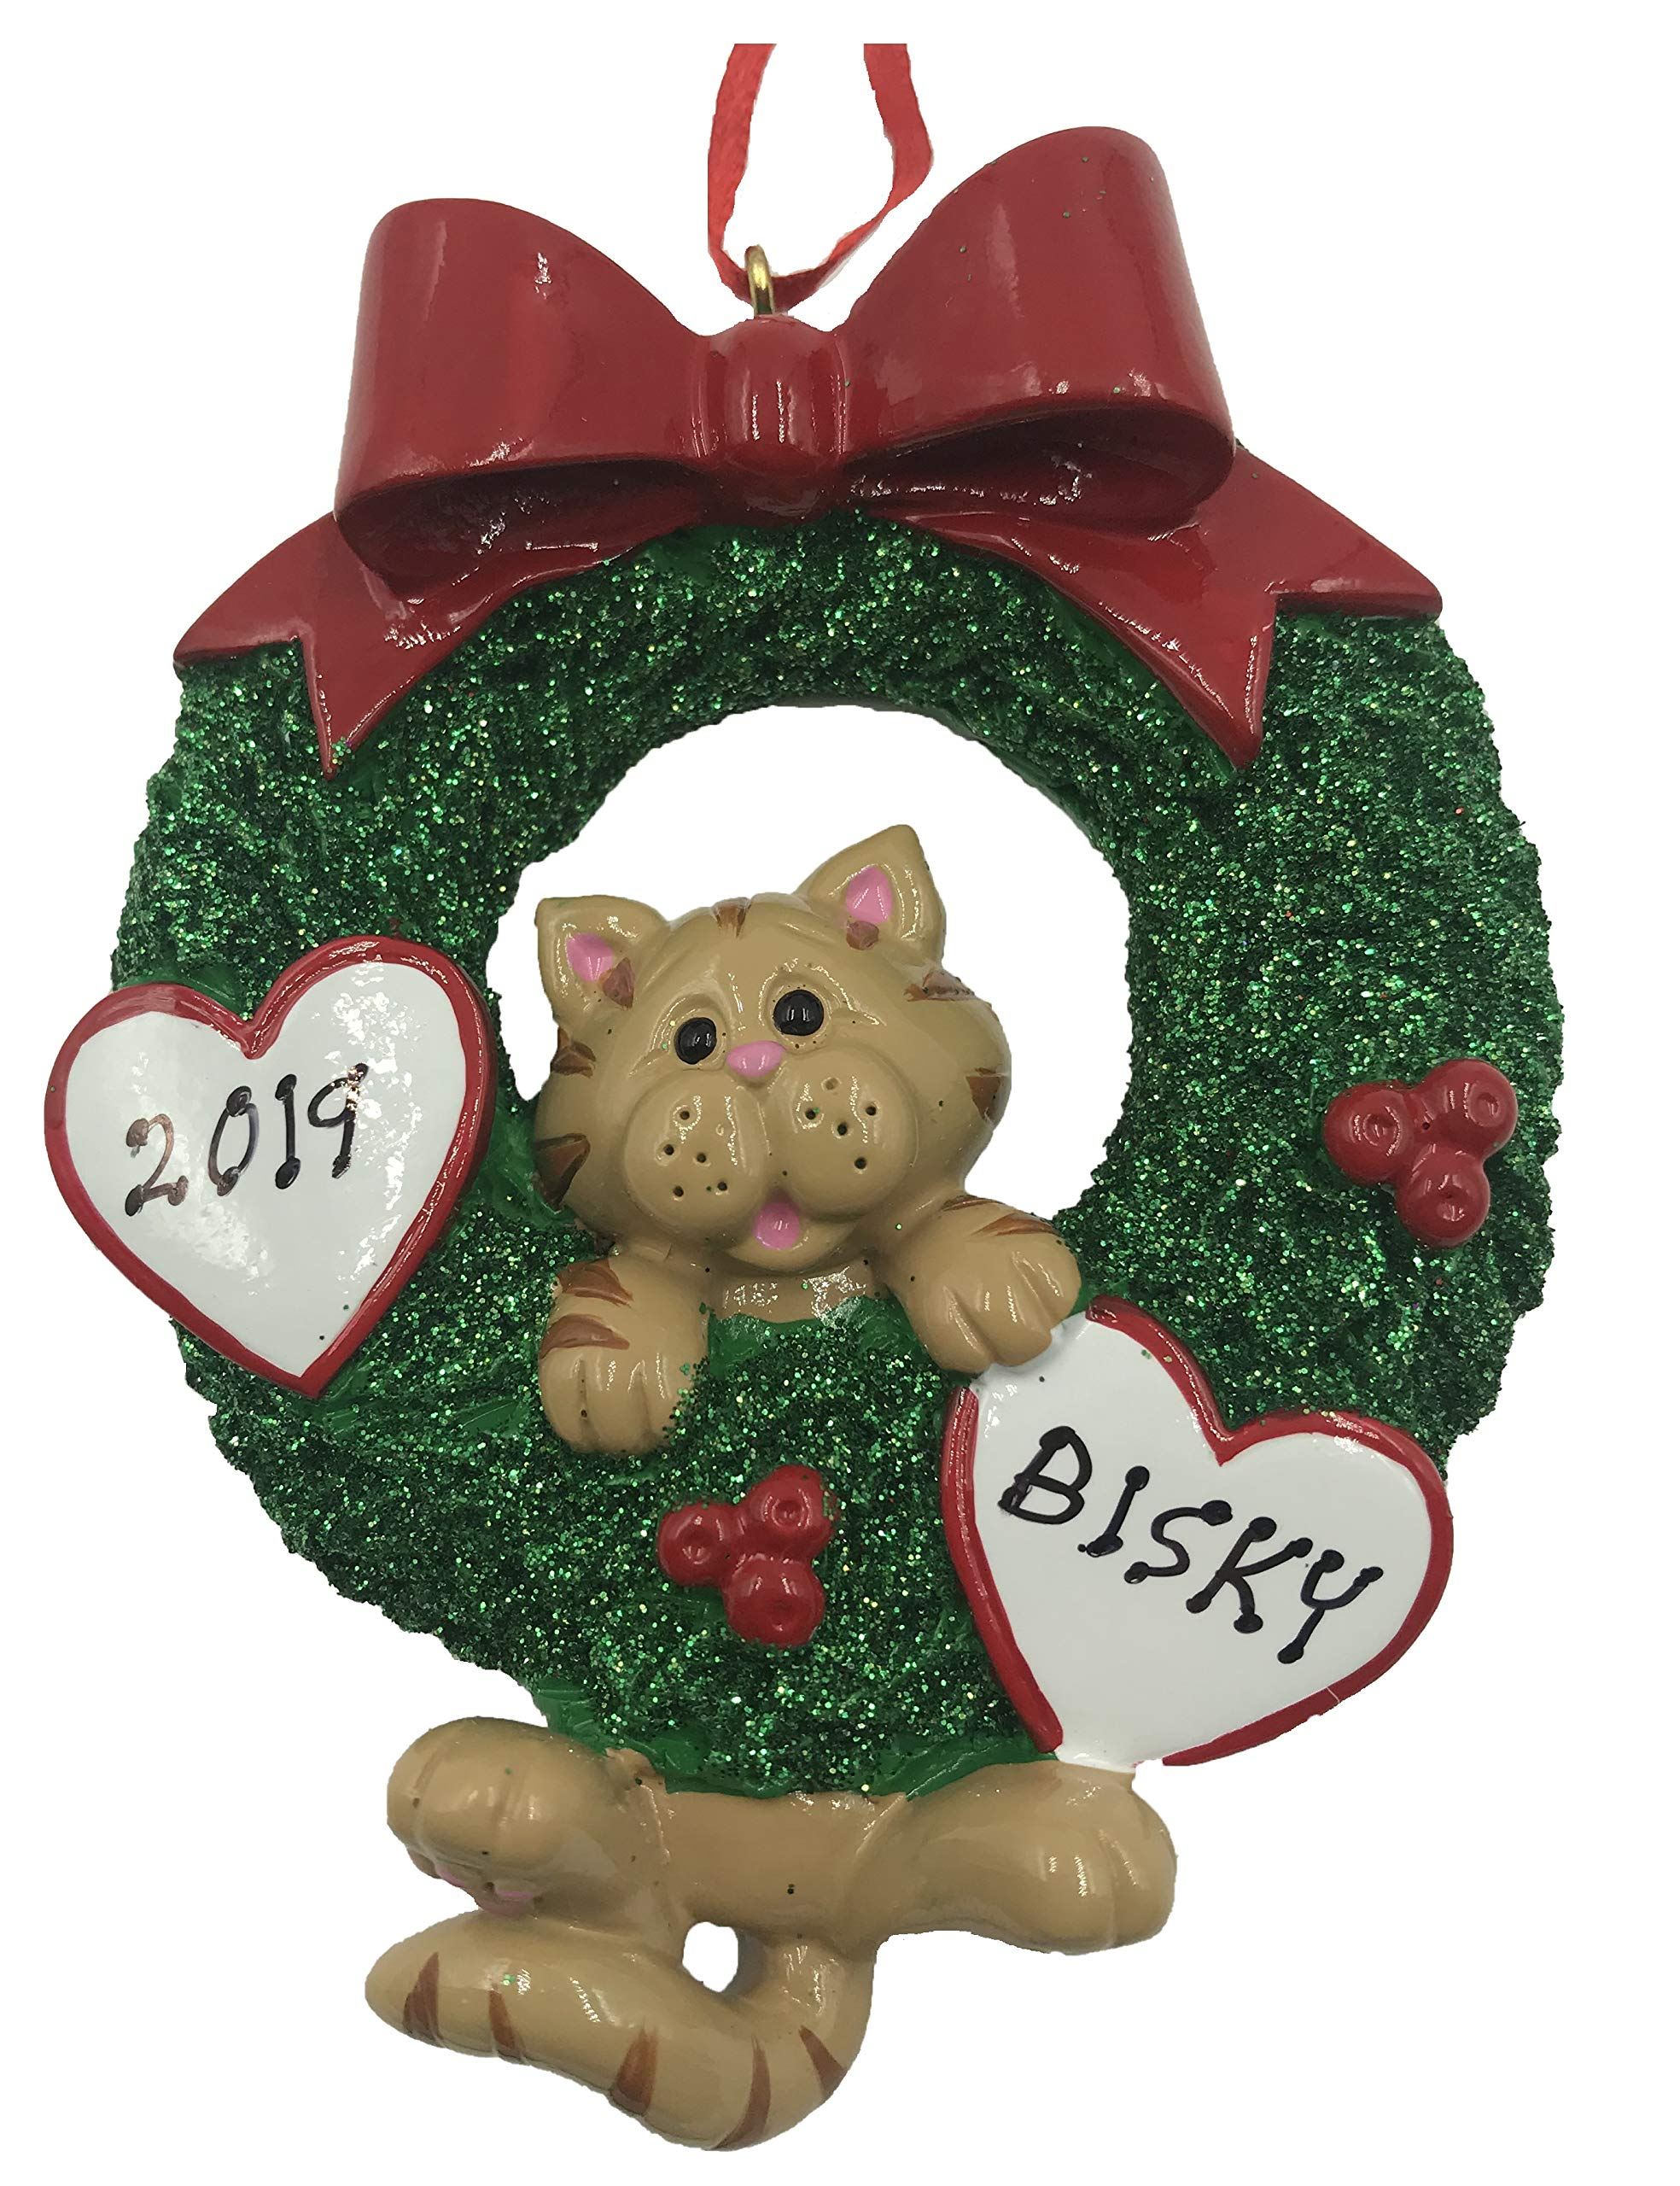 Cat Christmas Ornament 2020 Amazon.com: Personalized Cat in Wreath Christmas Ornament 2020